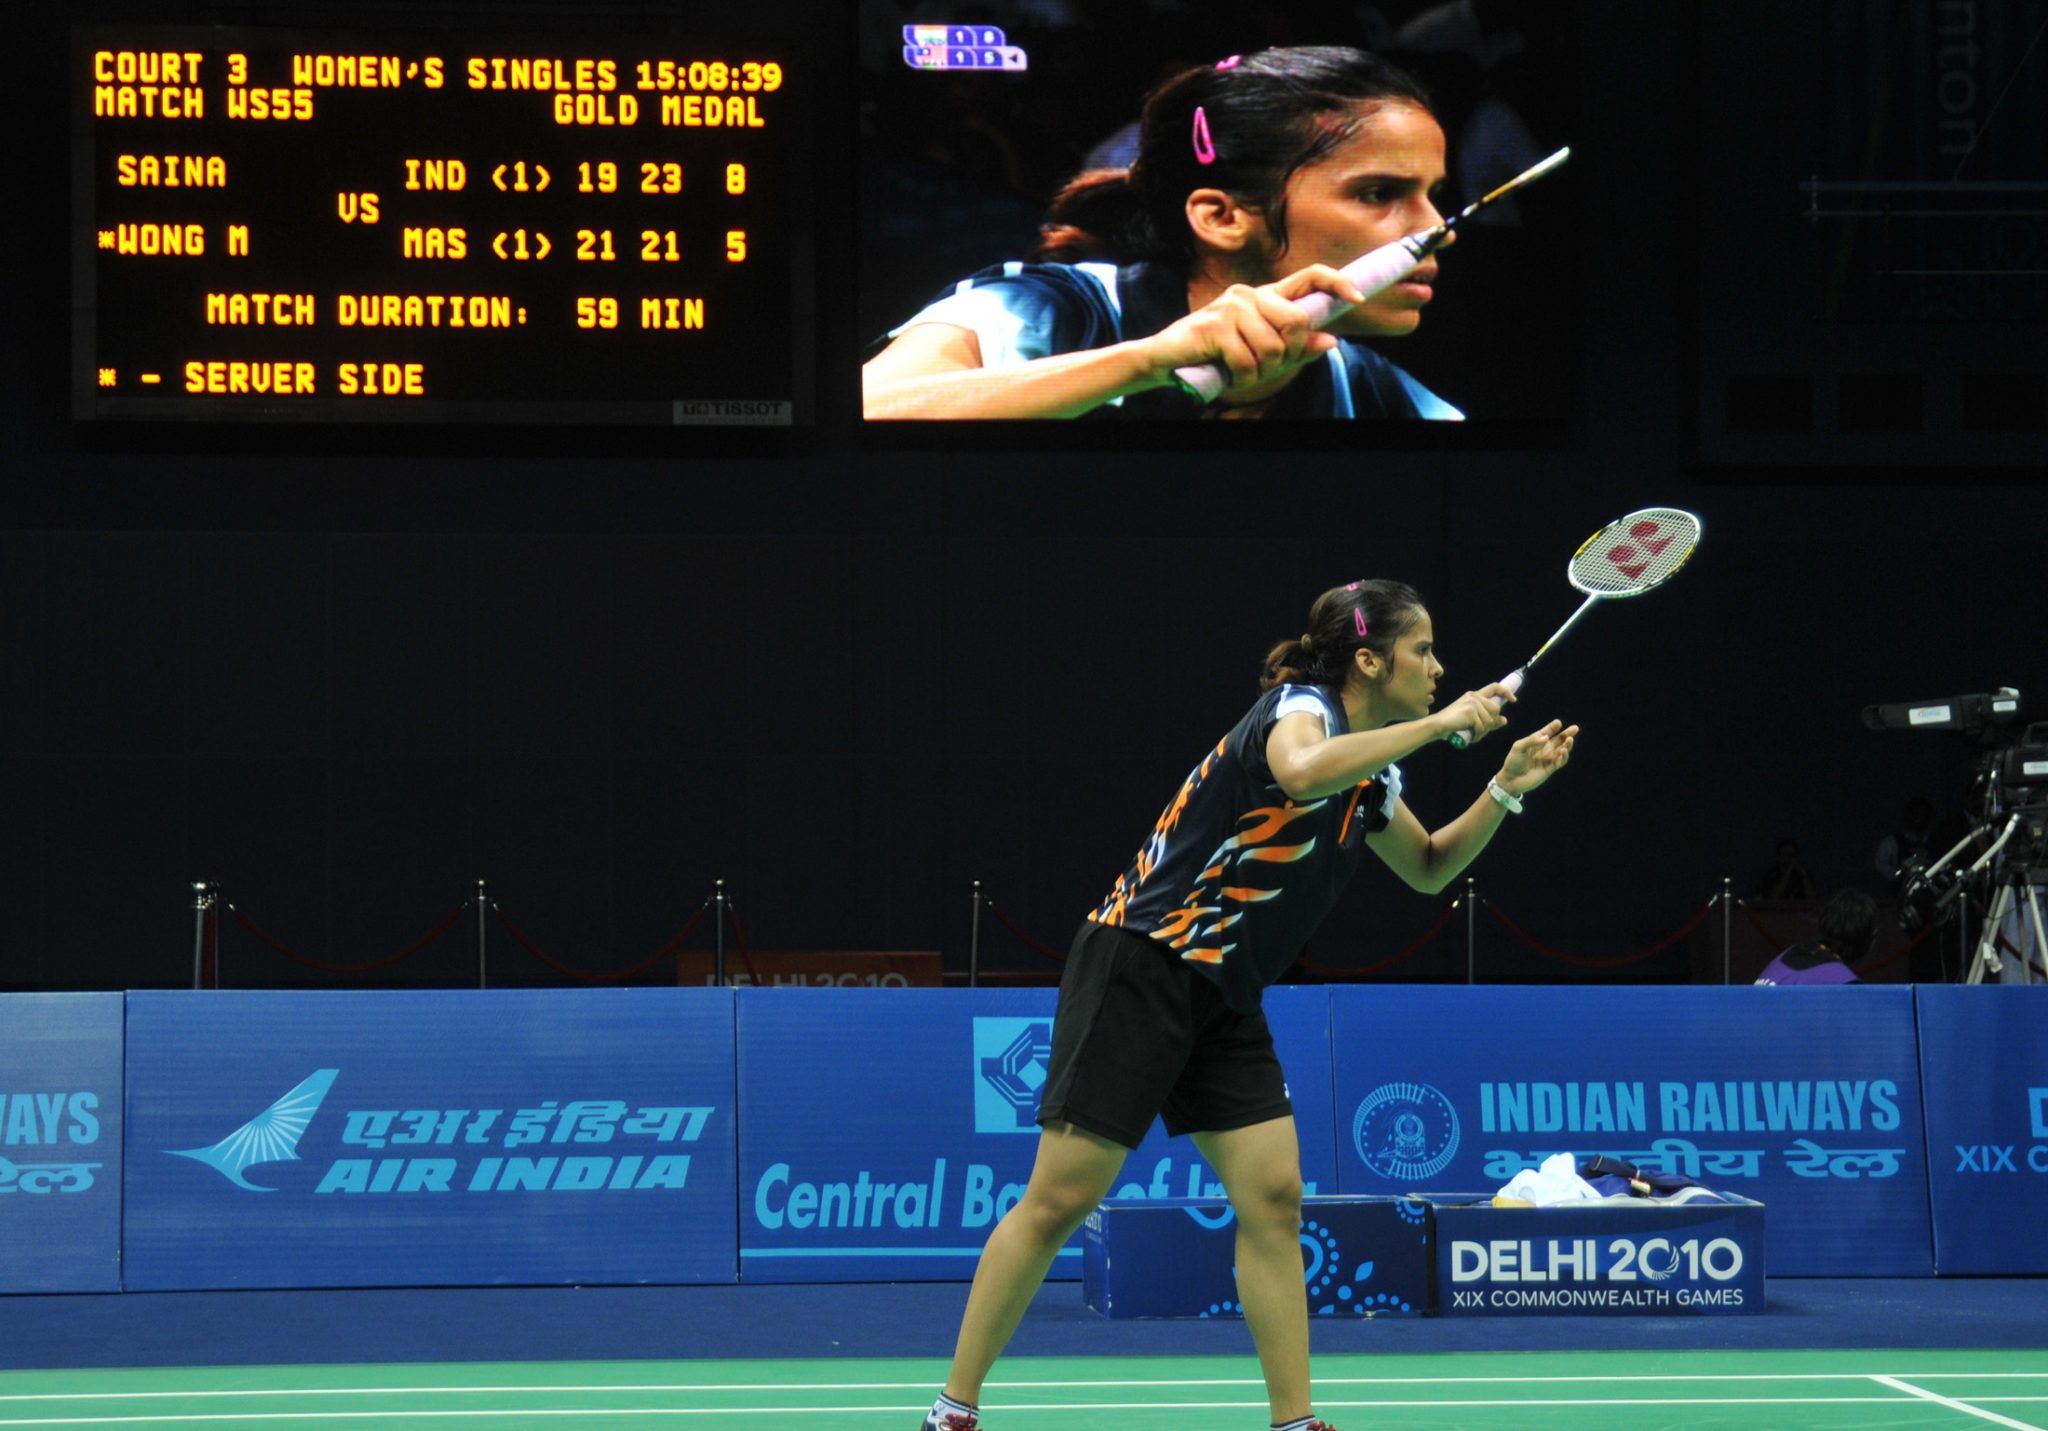 How Badminton star Saina Nehwal inspired me before she became famous